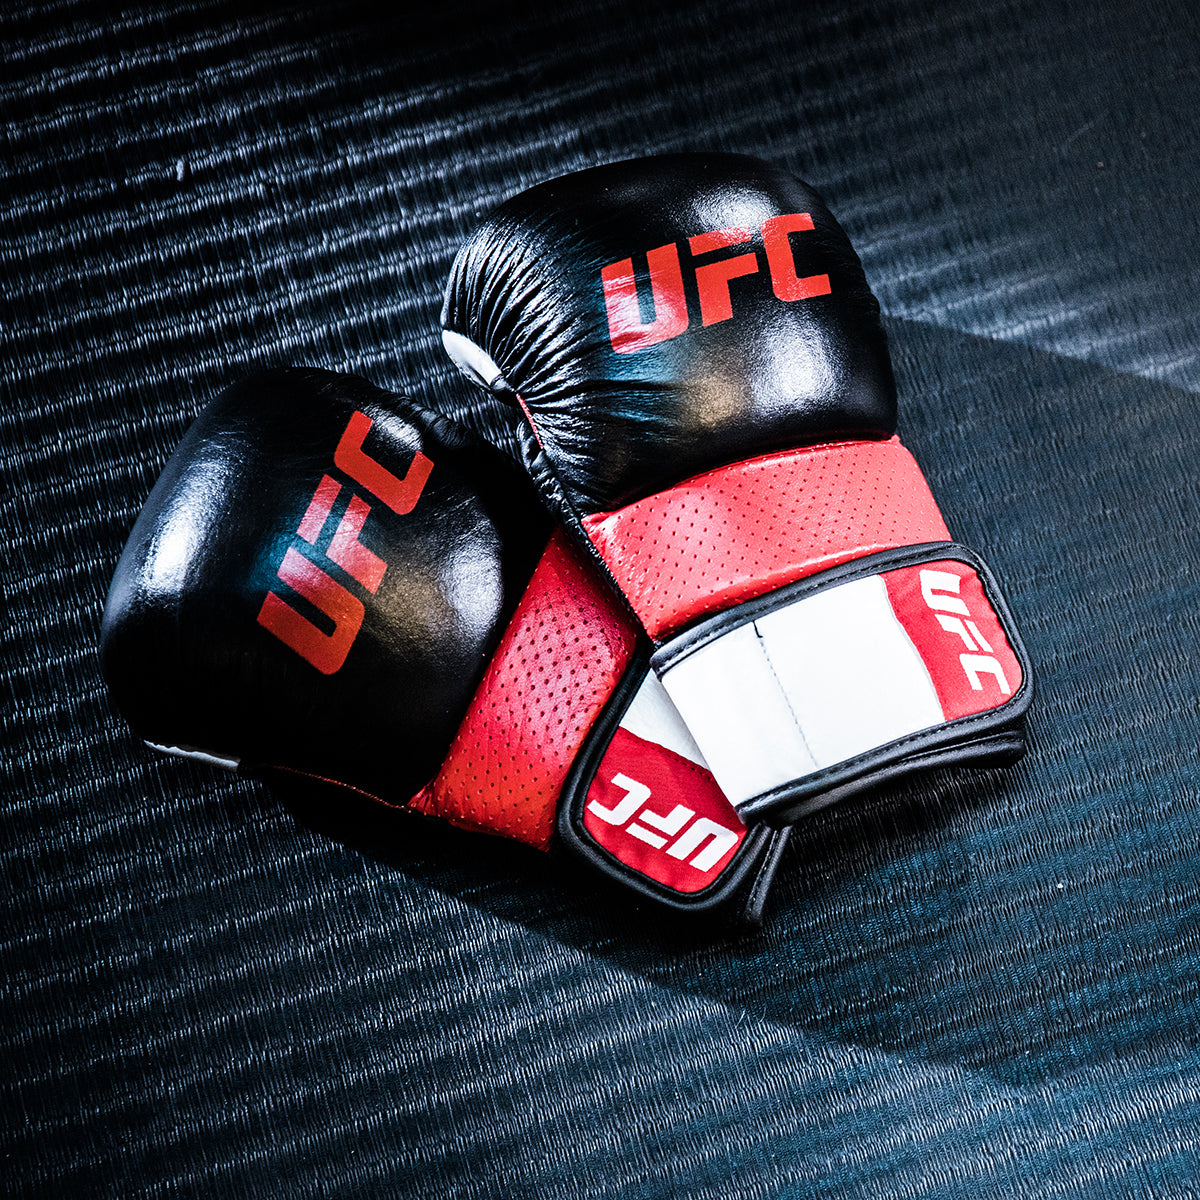 Pair of UFC Pro MMA Sparring Gloves